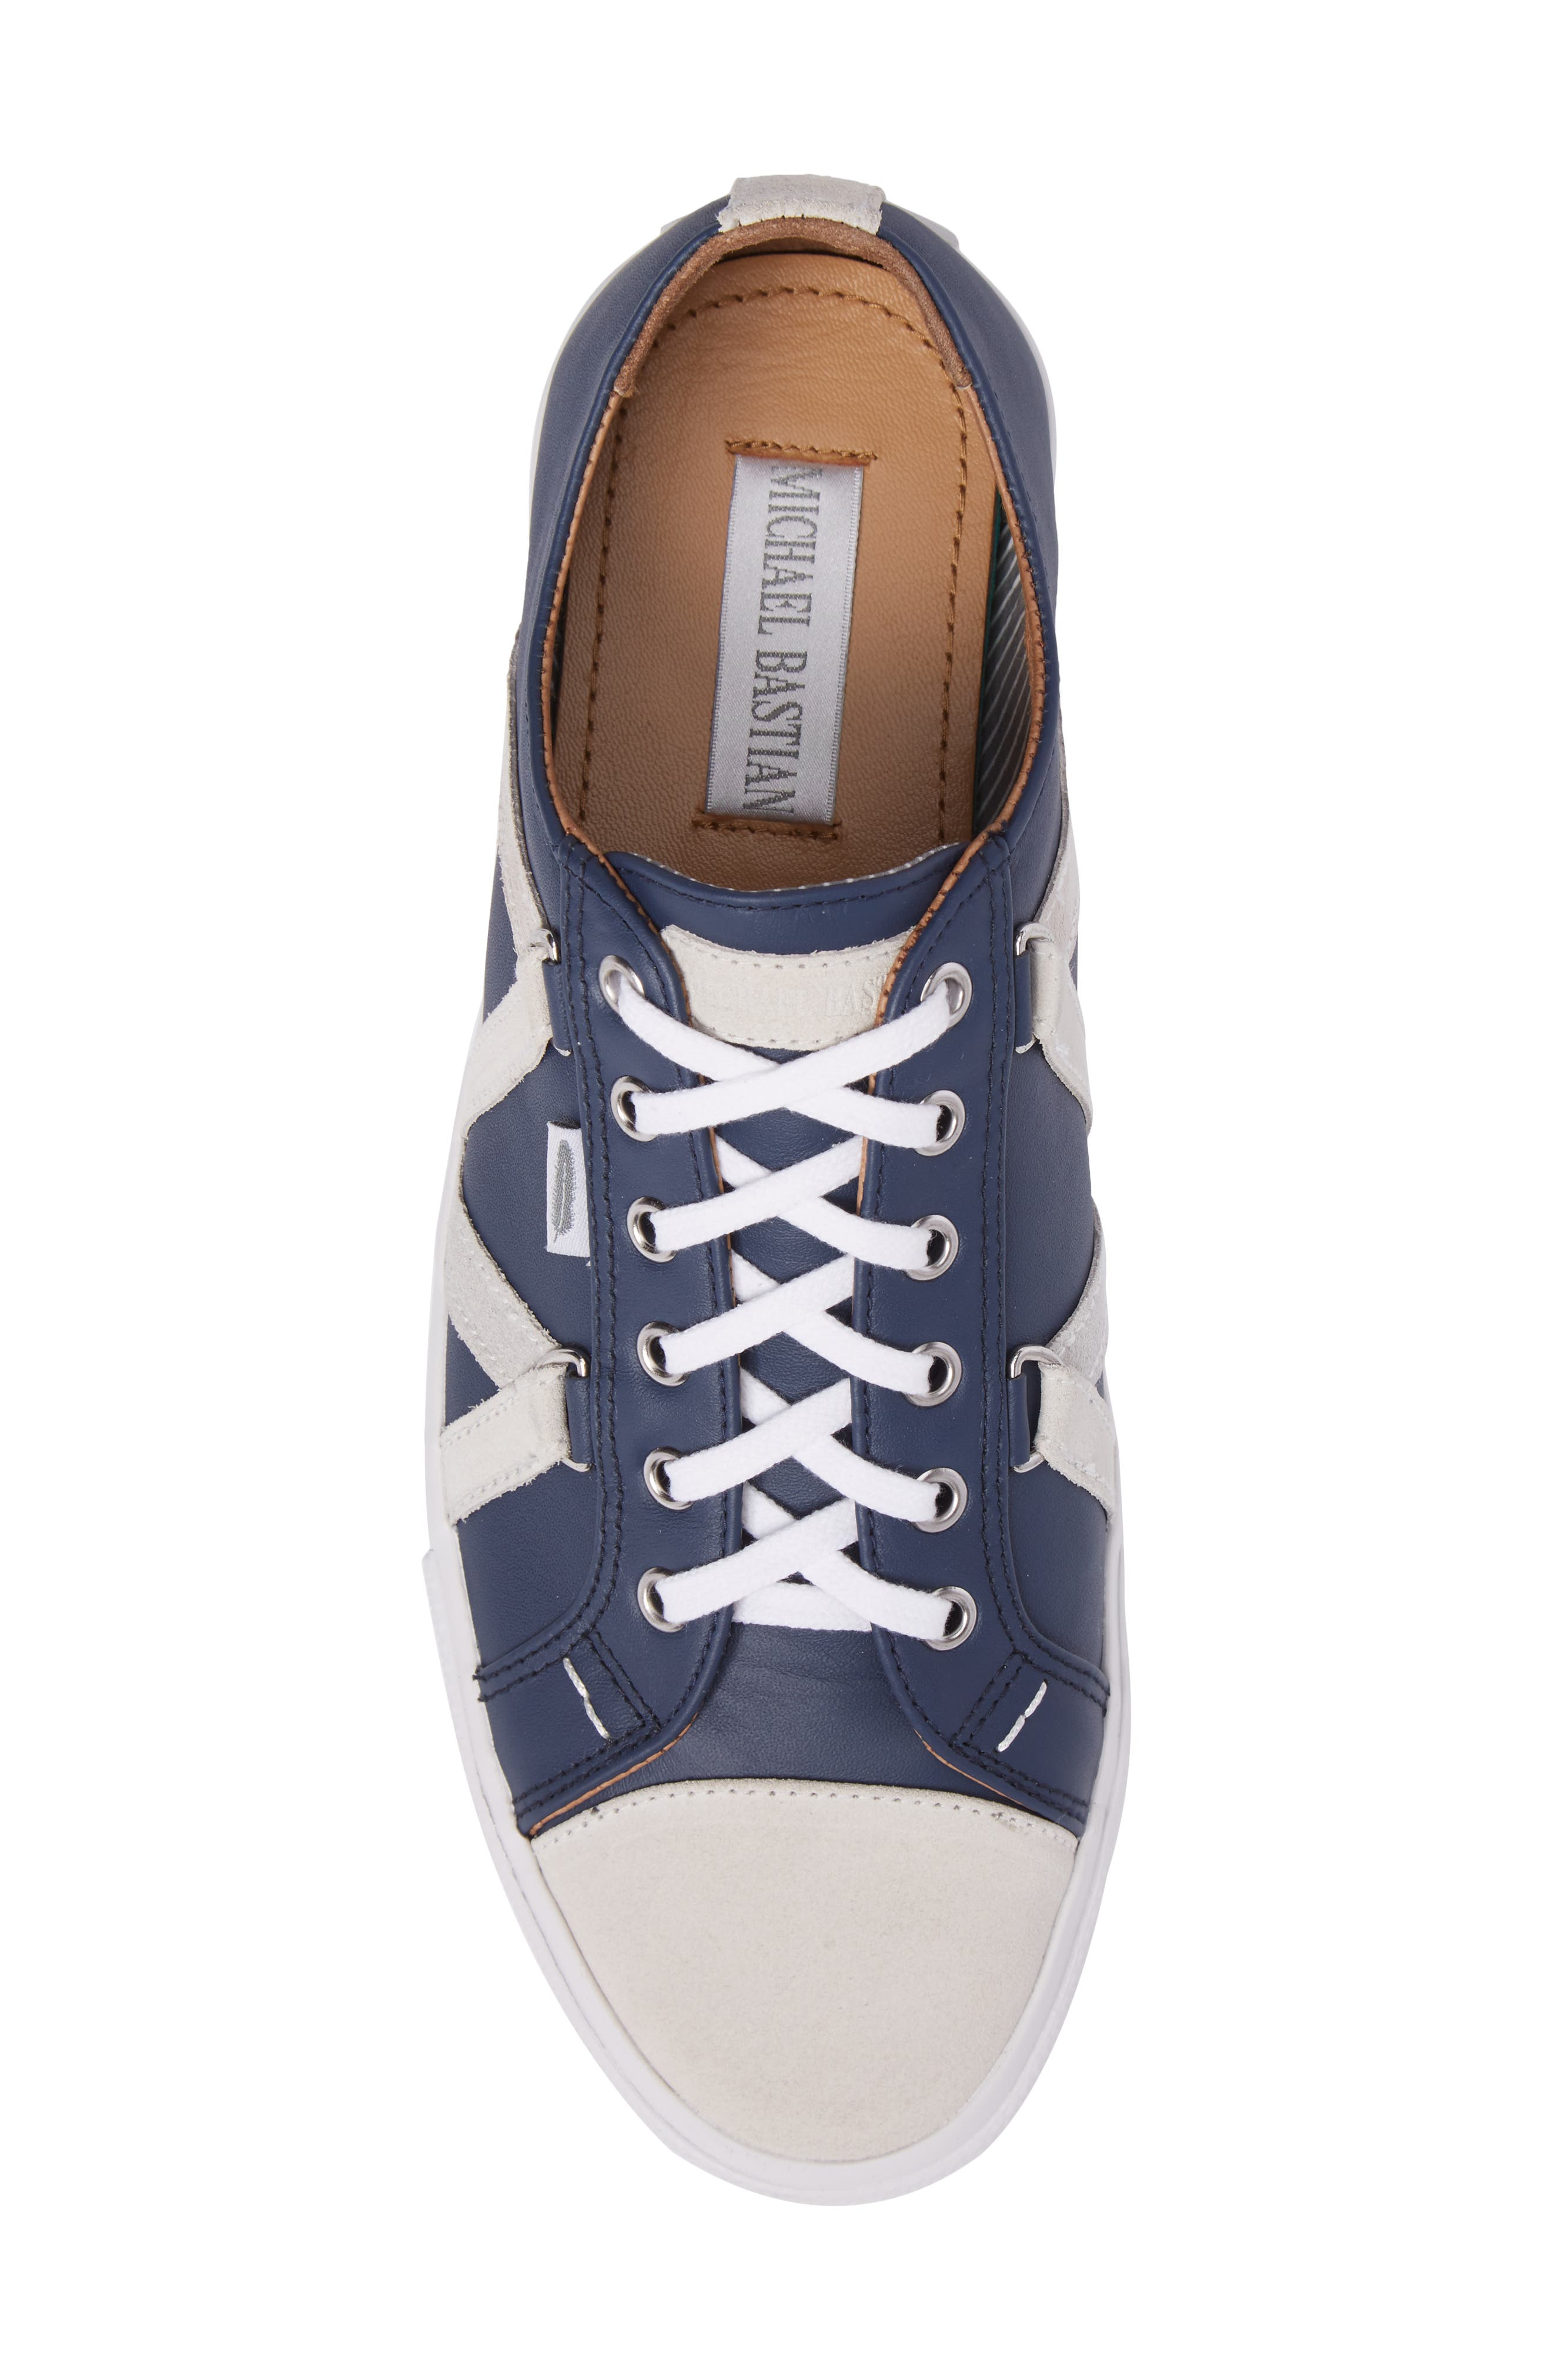 Signature Sneaker,                             Alternate thumbnail 5, color,                             NAVY LEATHER